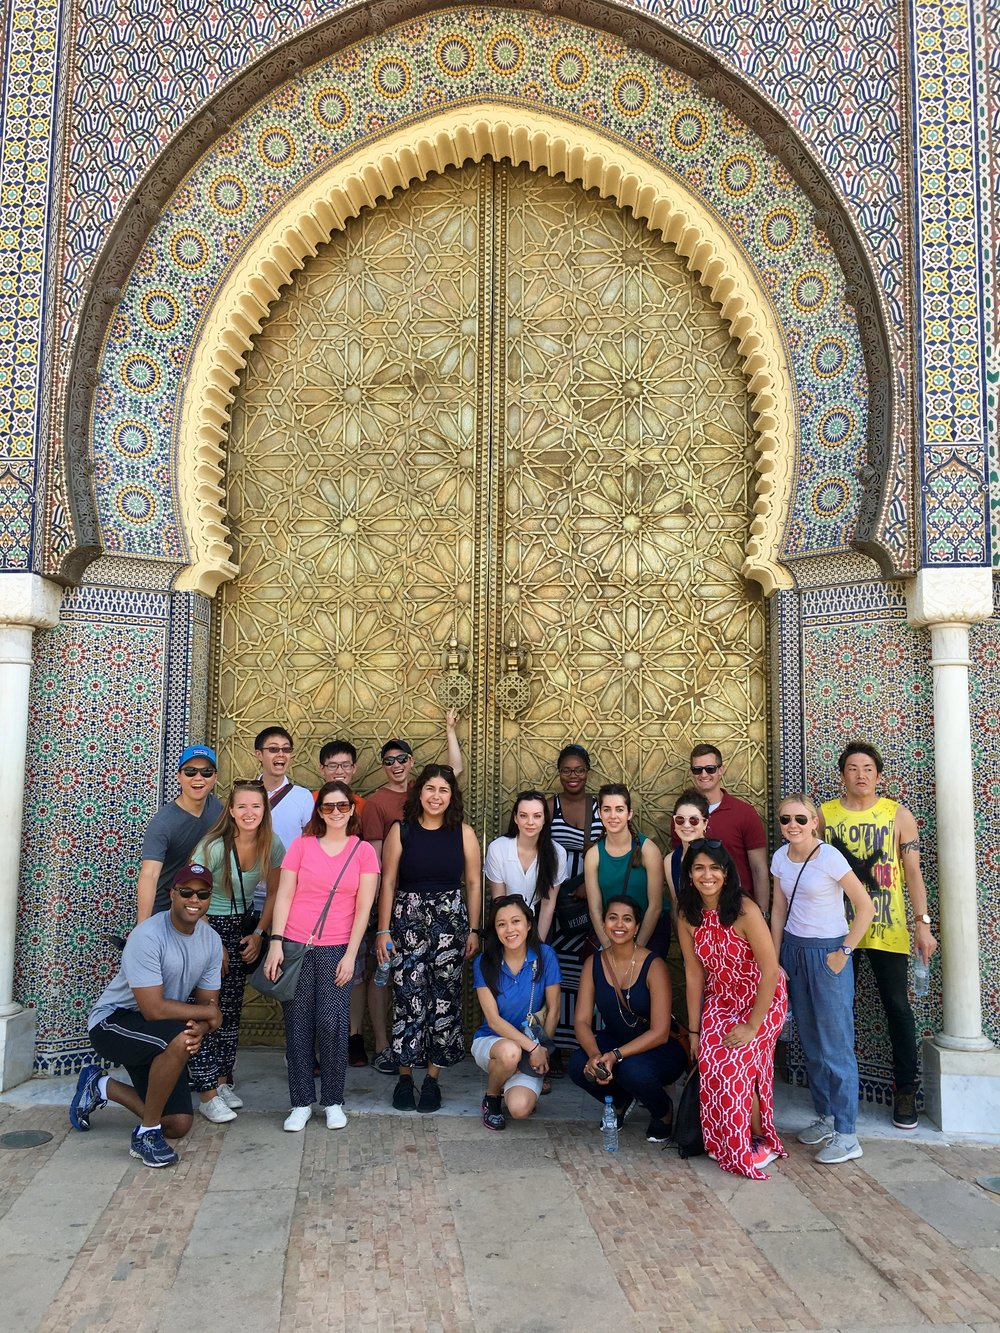 Group poses in front of one of the beautiful doorways of Fez